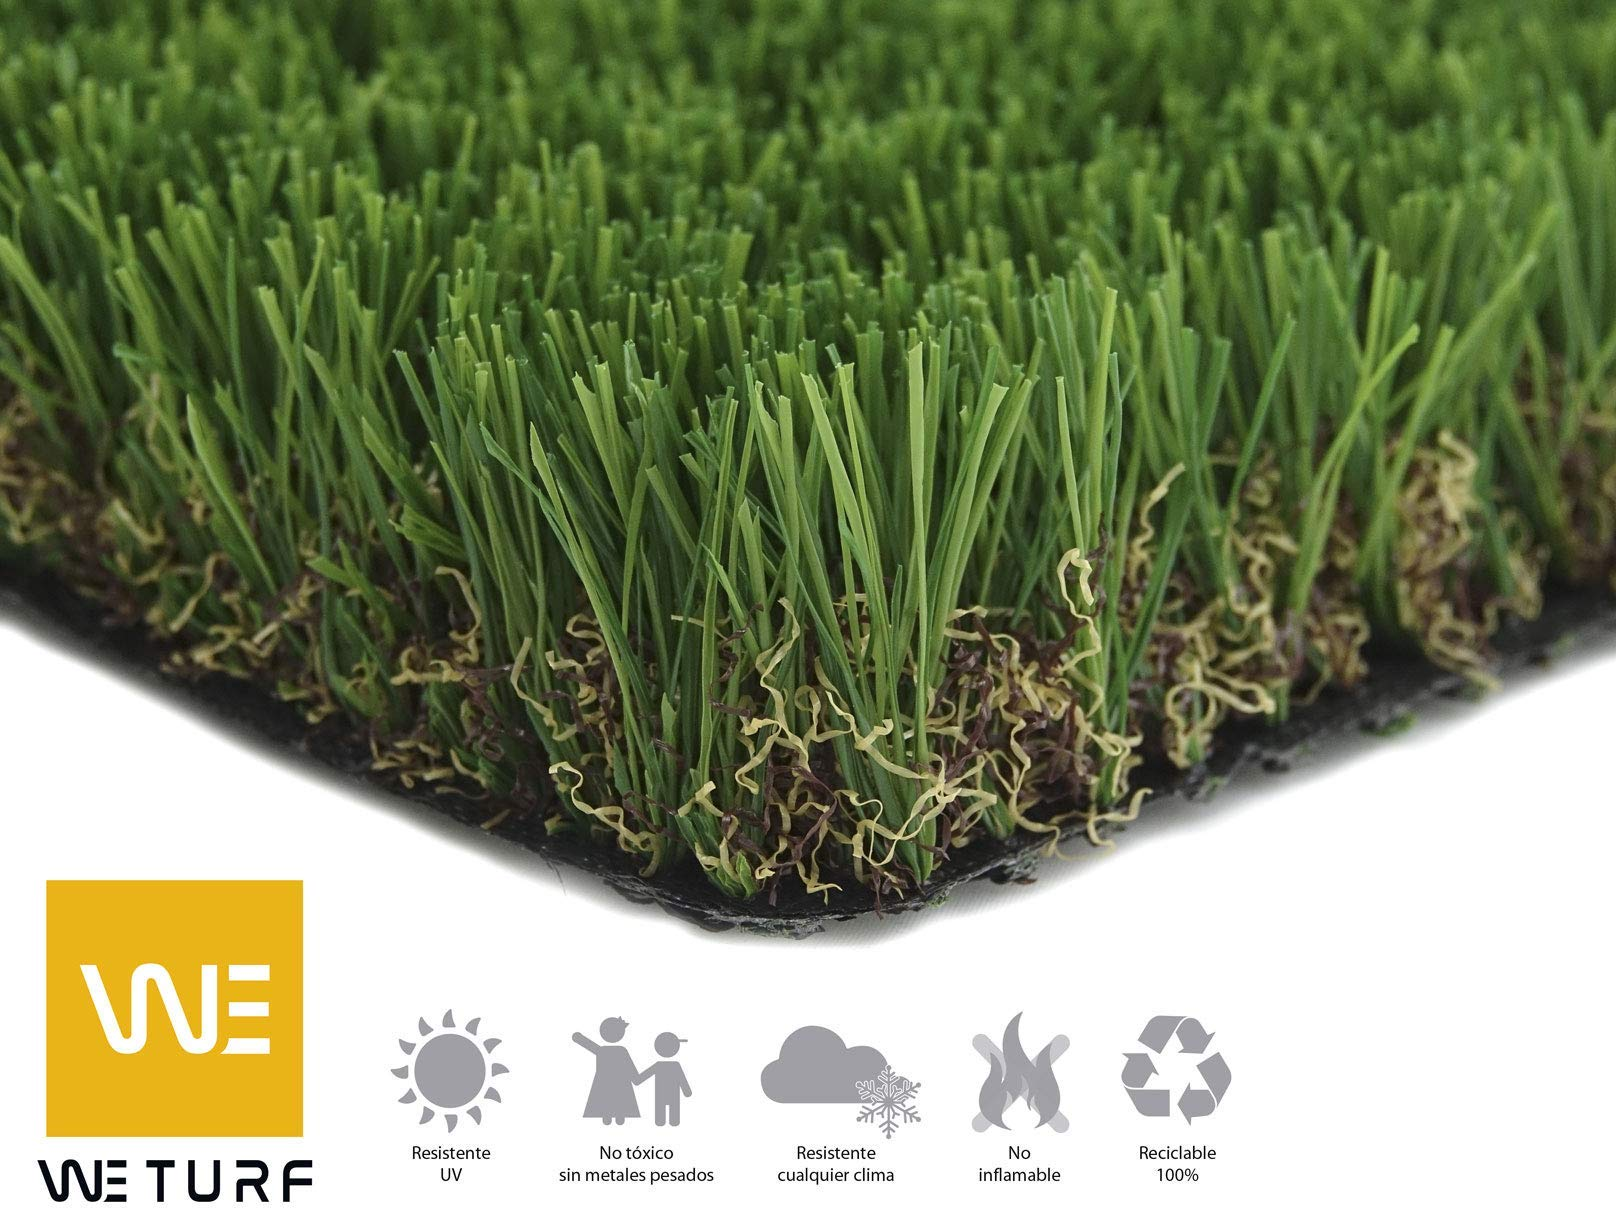 WETURF Césped Artificial/Césped Sintético 25mm (2mx0, 5mx2, 4m, Bicolor con rizo beige): Amazon.es: Jardín